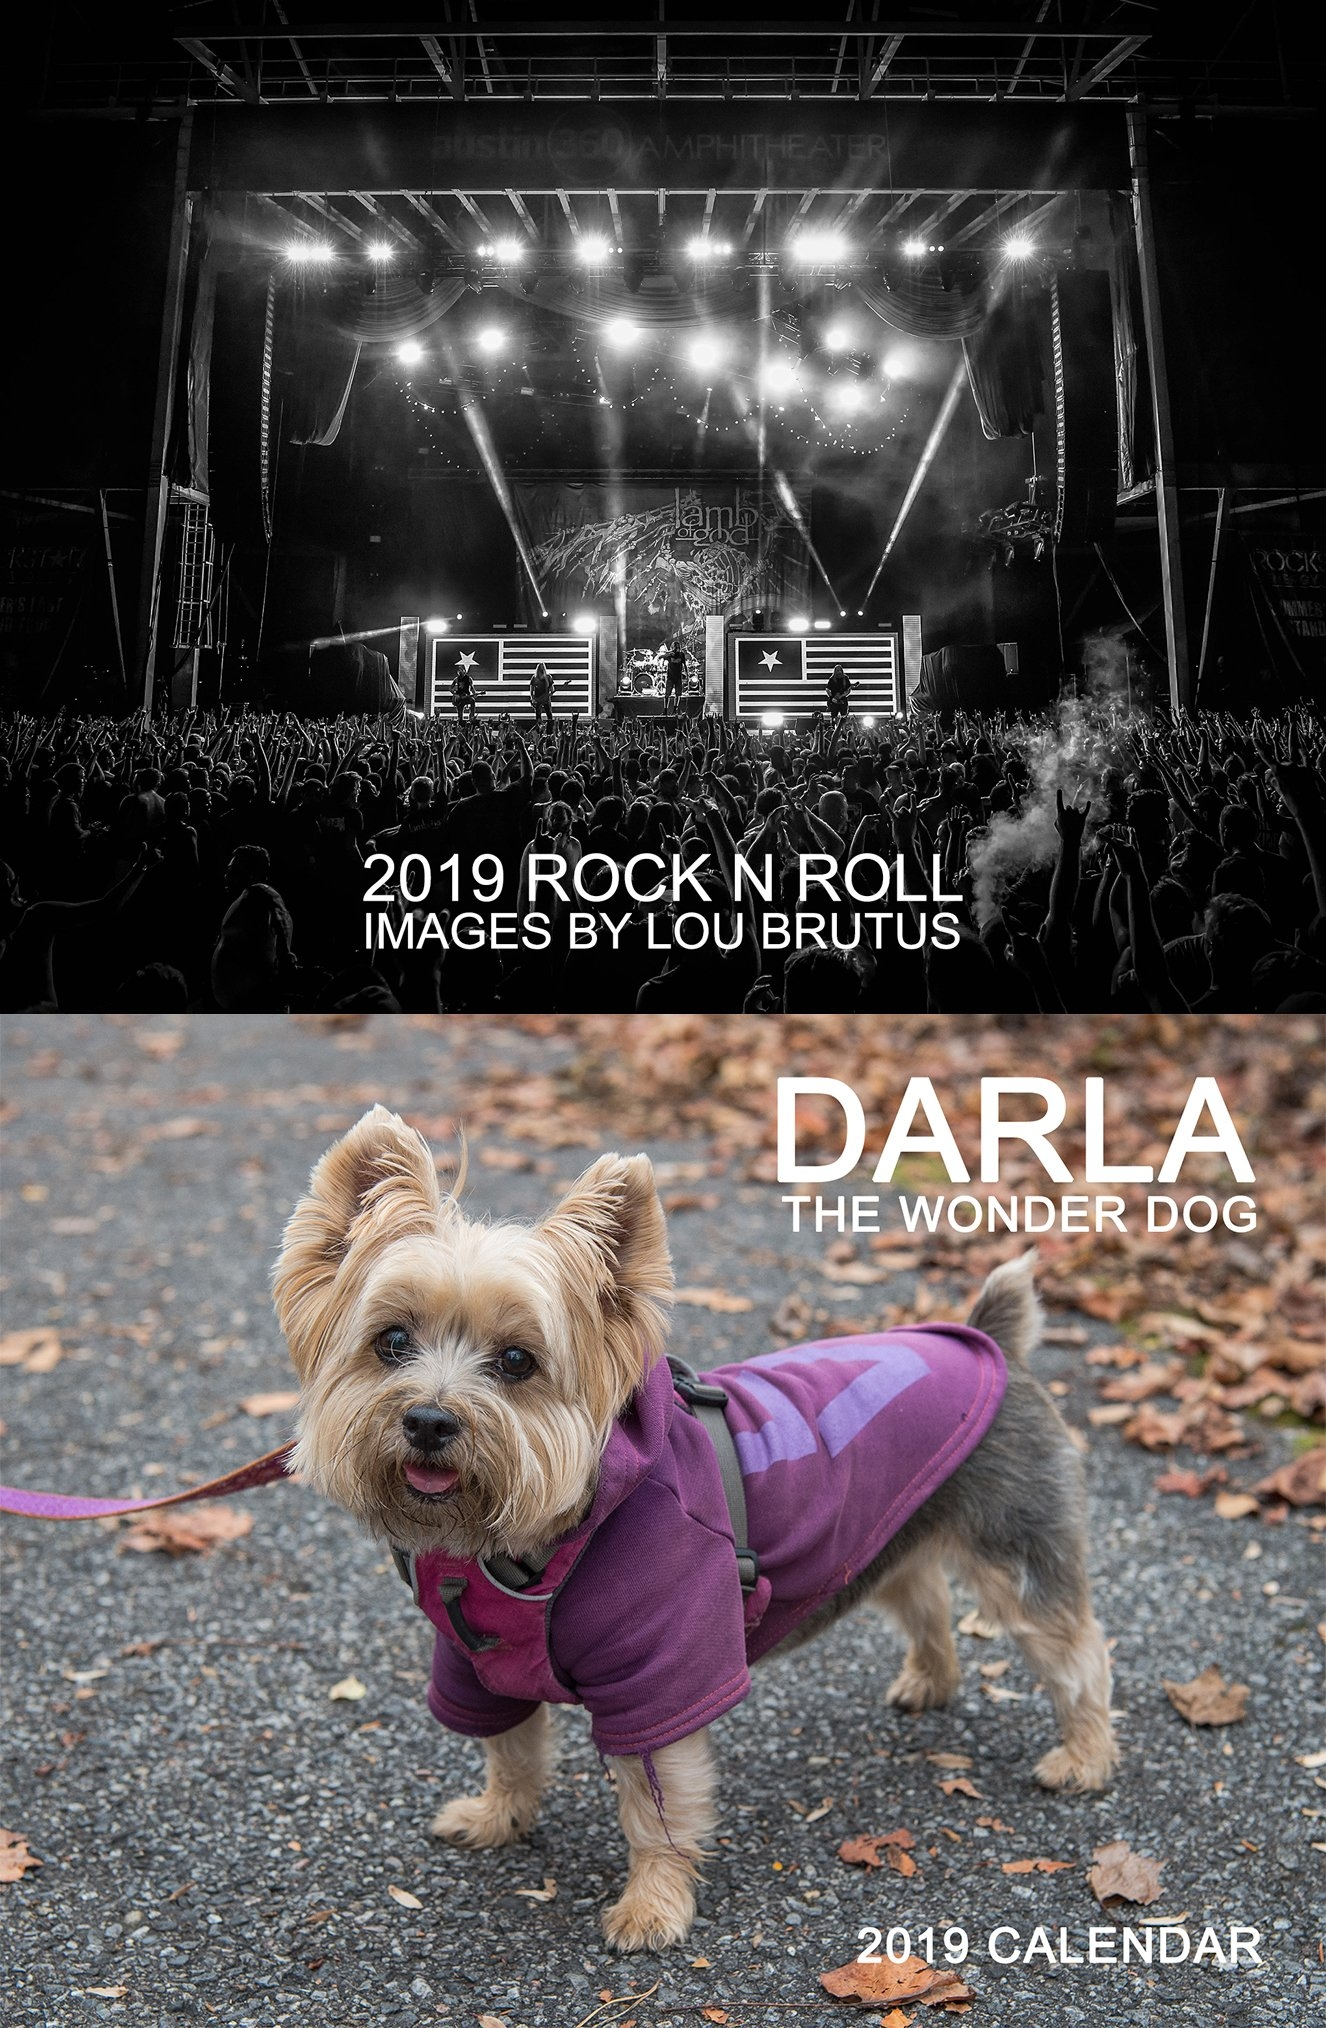 2019 Calendars From Lb & Darla - Lou Brutus - Sonic Warrior Rock N Roll Calendar 2019